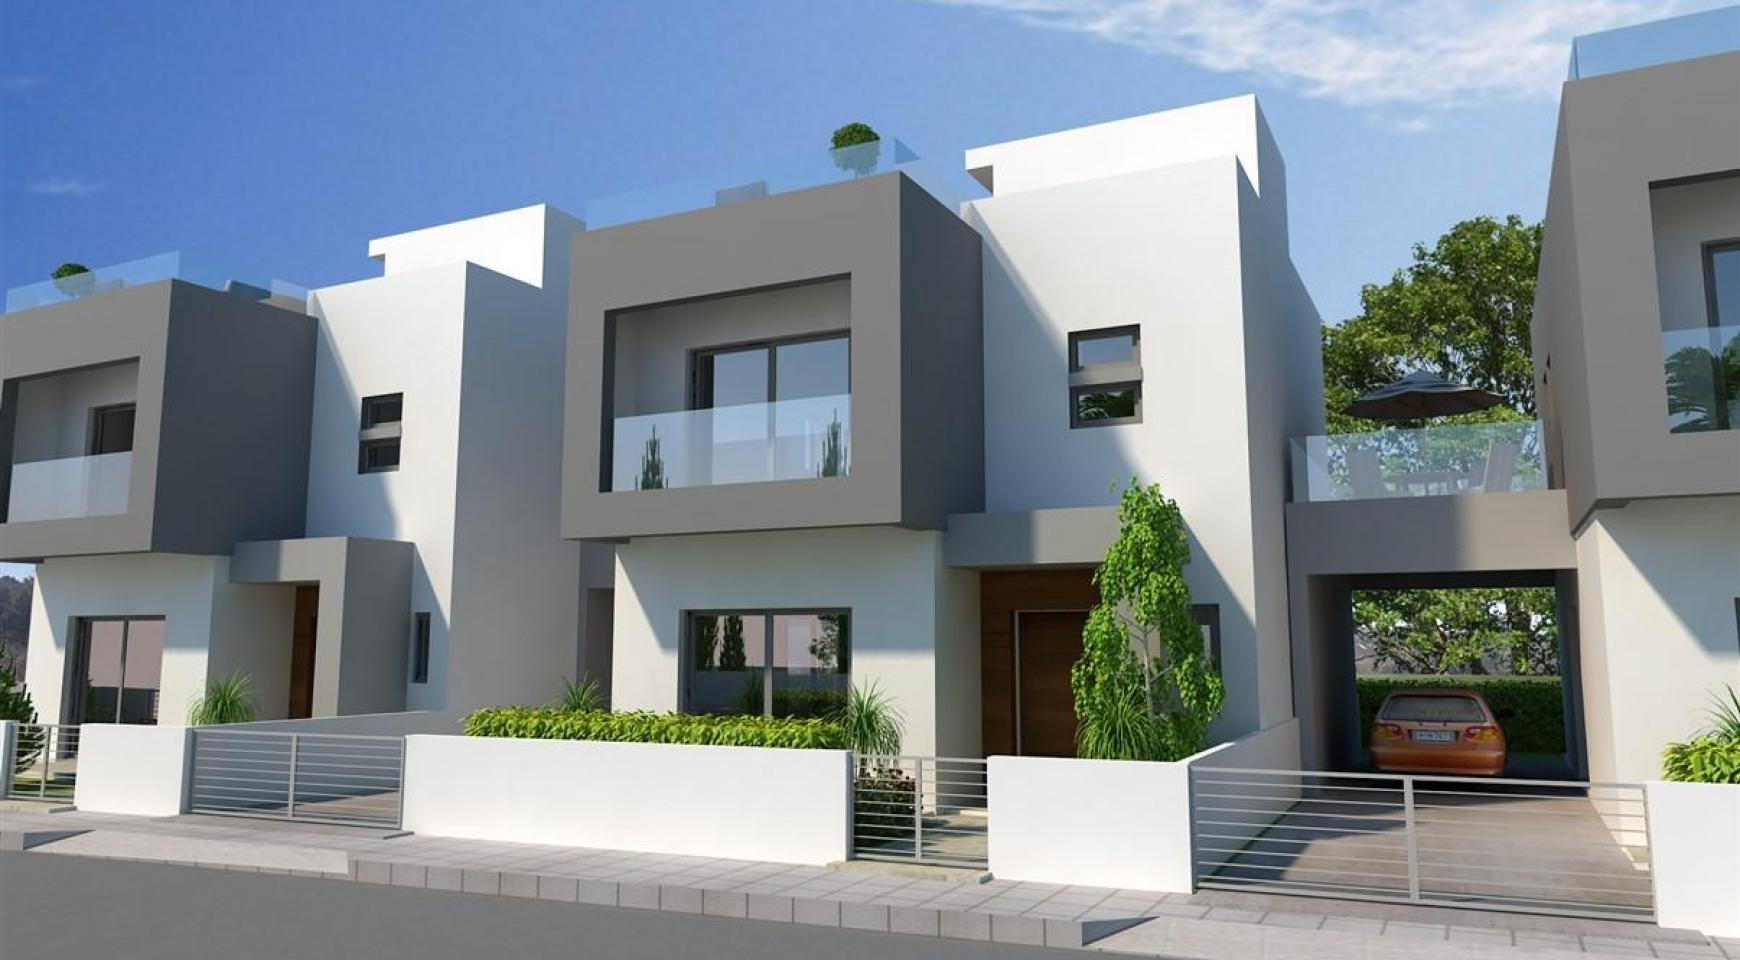 3 Bedroom Villa in New Project in Paphos - 38